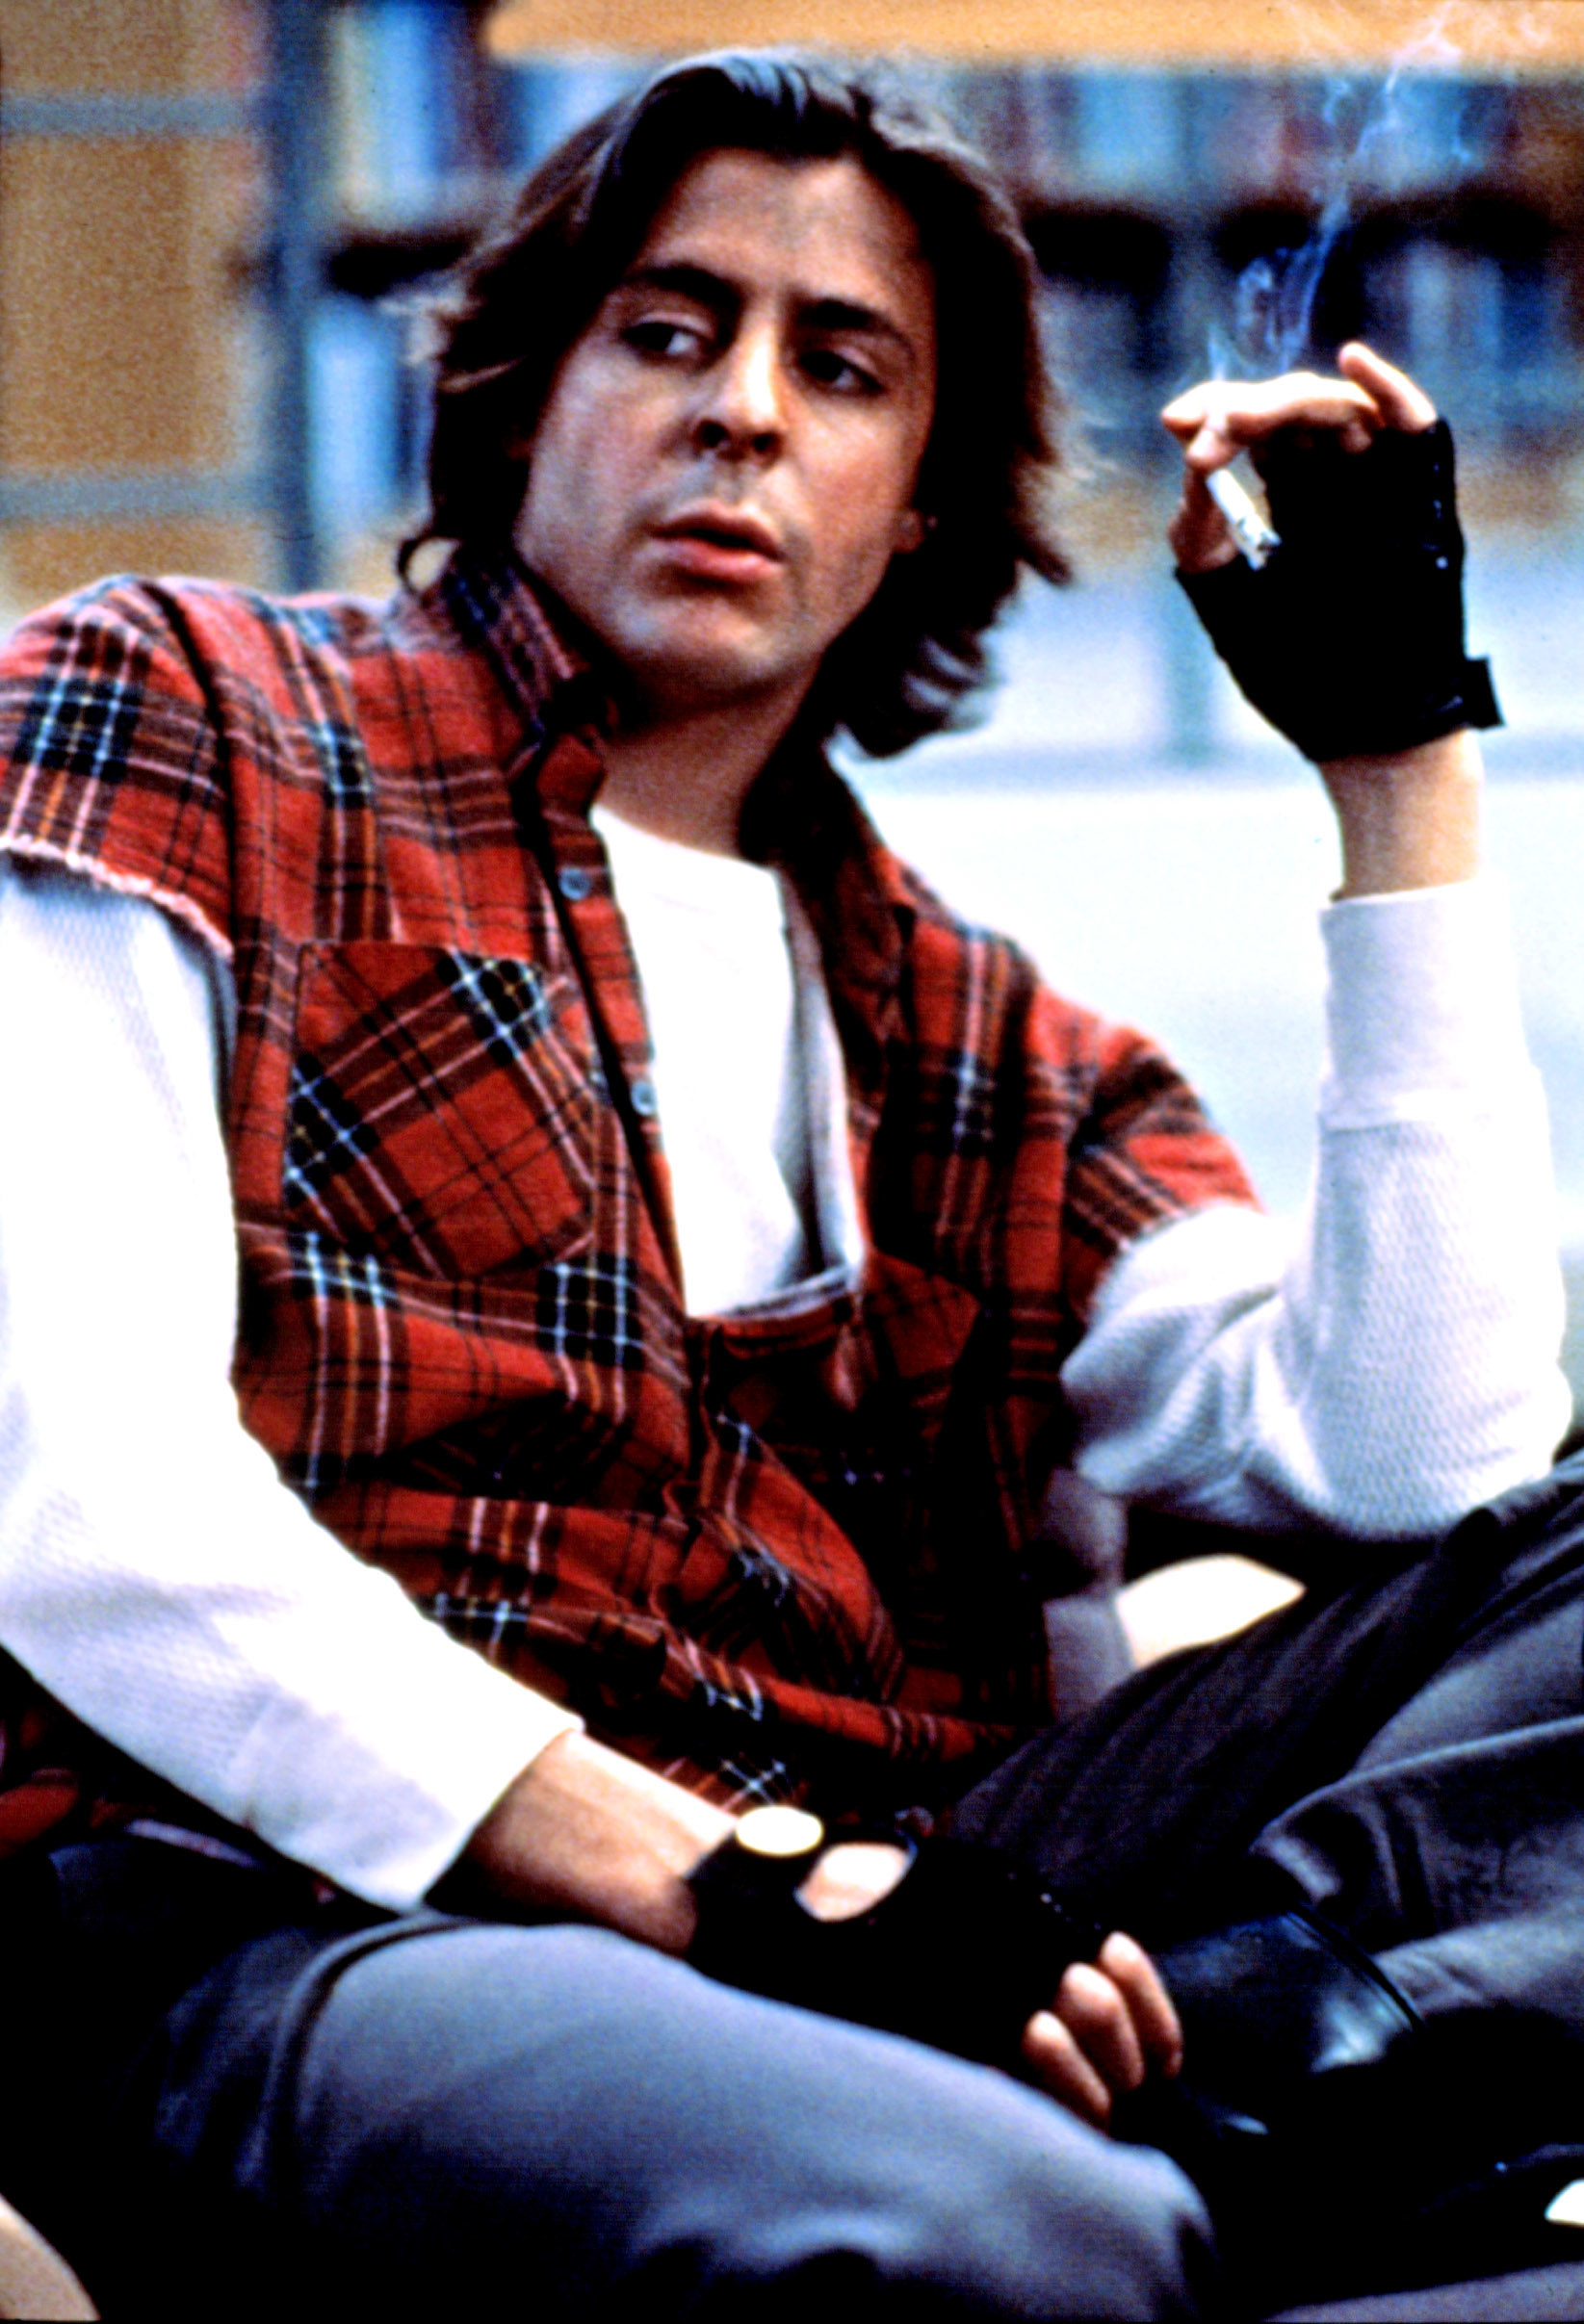 """Bender smoking a cigarette in """"The Breakfast Club"""""""